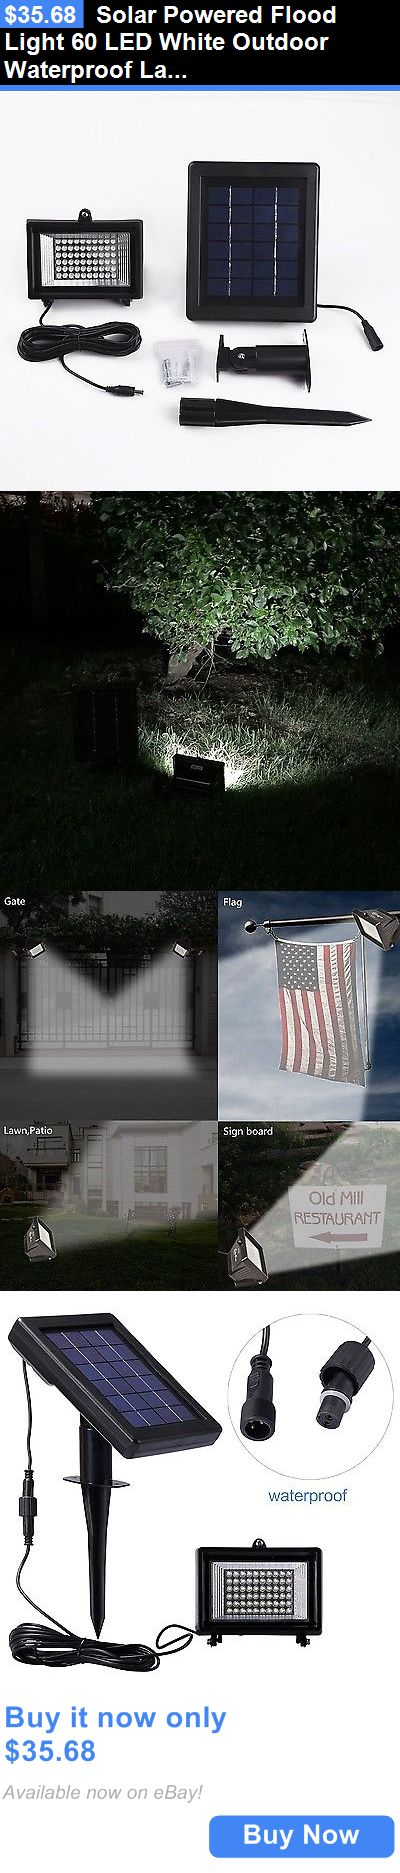 farm and garden: Solar Powered Flood Light 60 Led White Outdoor Waterproof Landscape Security... BUY IT NOW ONLY: $35.68